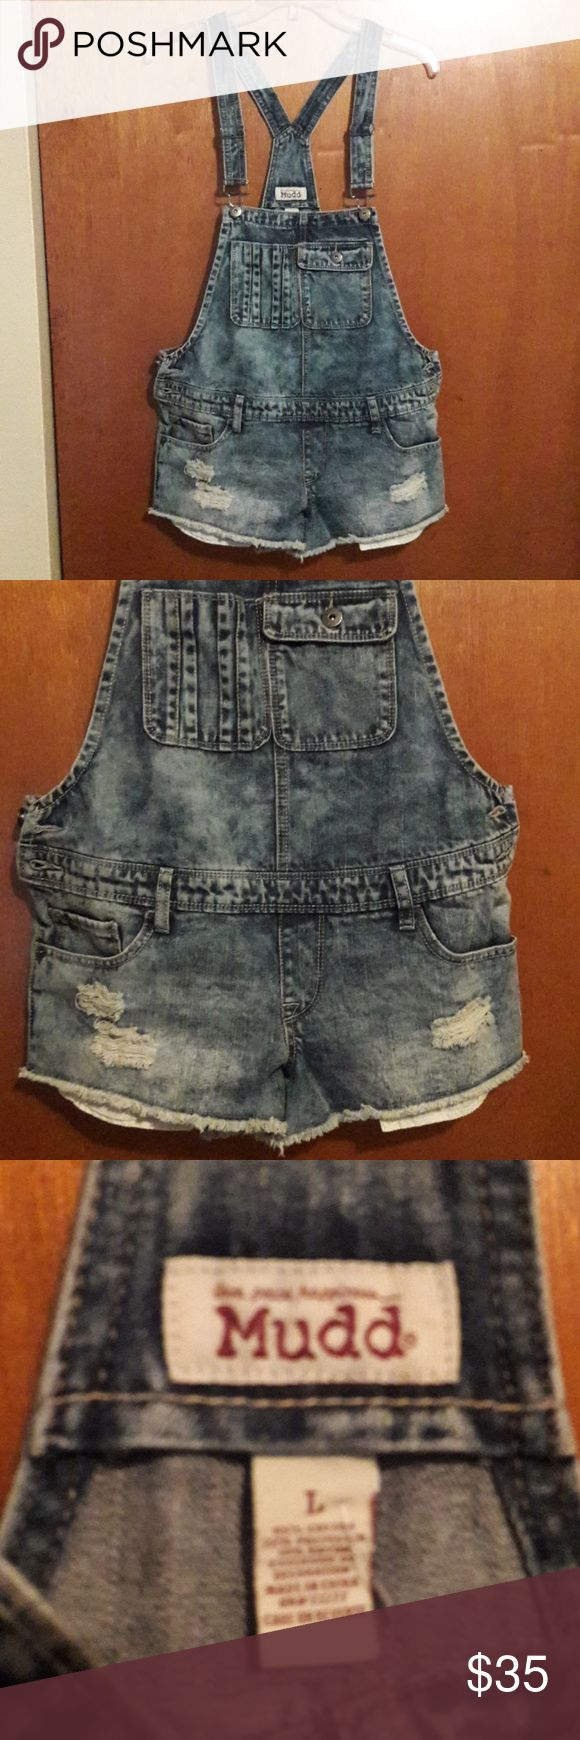 """Large Mudd Jean Bib Short Overalls Distressed NWOT Sweet find. Your looking at a pair of Mudd Jean Short overalls. Factory distressed & frayed. They also has 7 functional pockets, one even buttons. There are 2 buttons on each side at the waist, belt loops and adjustable suspenders.  These shorts are a size LARGE, fit like a 9/10. They are pretty short, inseam measures 2 1/4"""" with fray, 2"""" without. Booty shorts! Pockets hang just a little lower than the shorts do, so they stick out a bit…"""